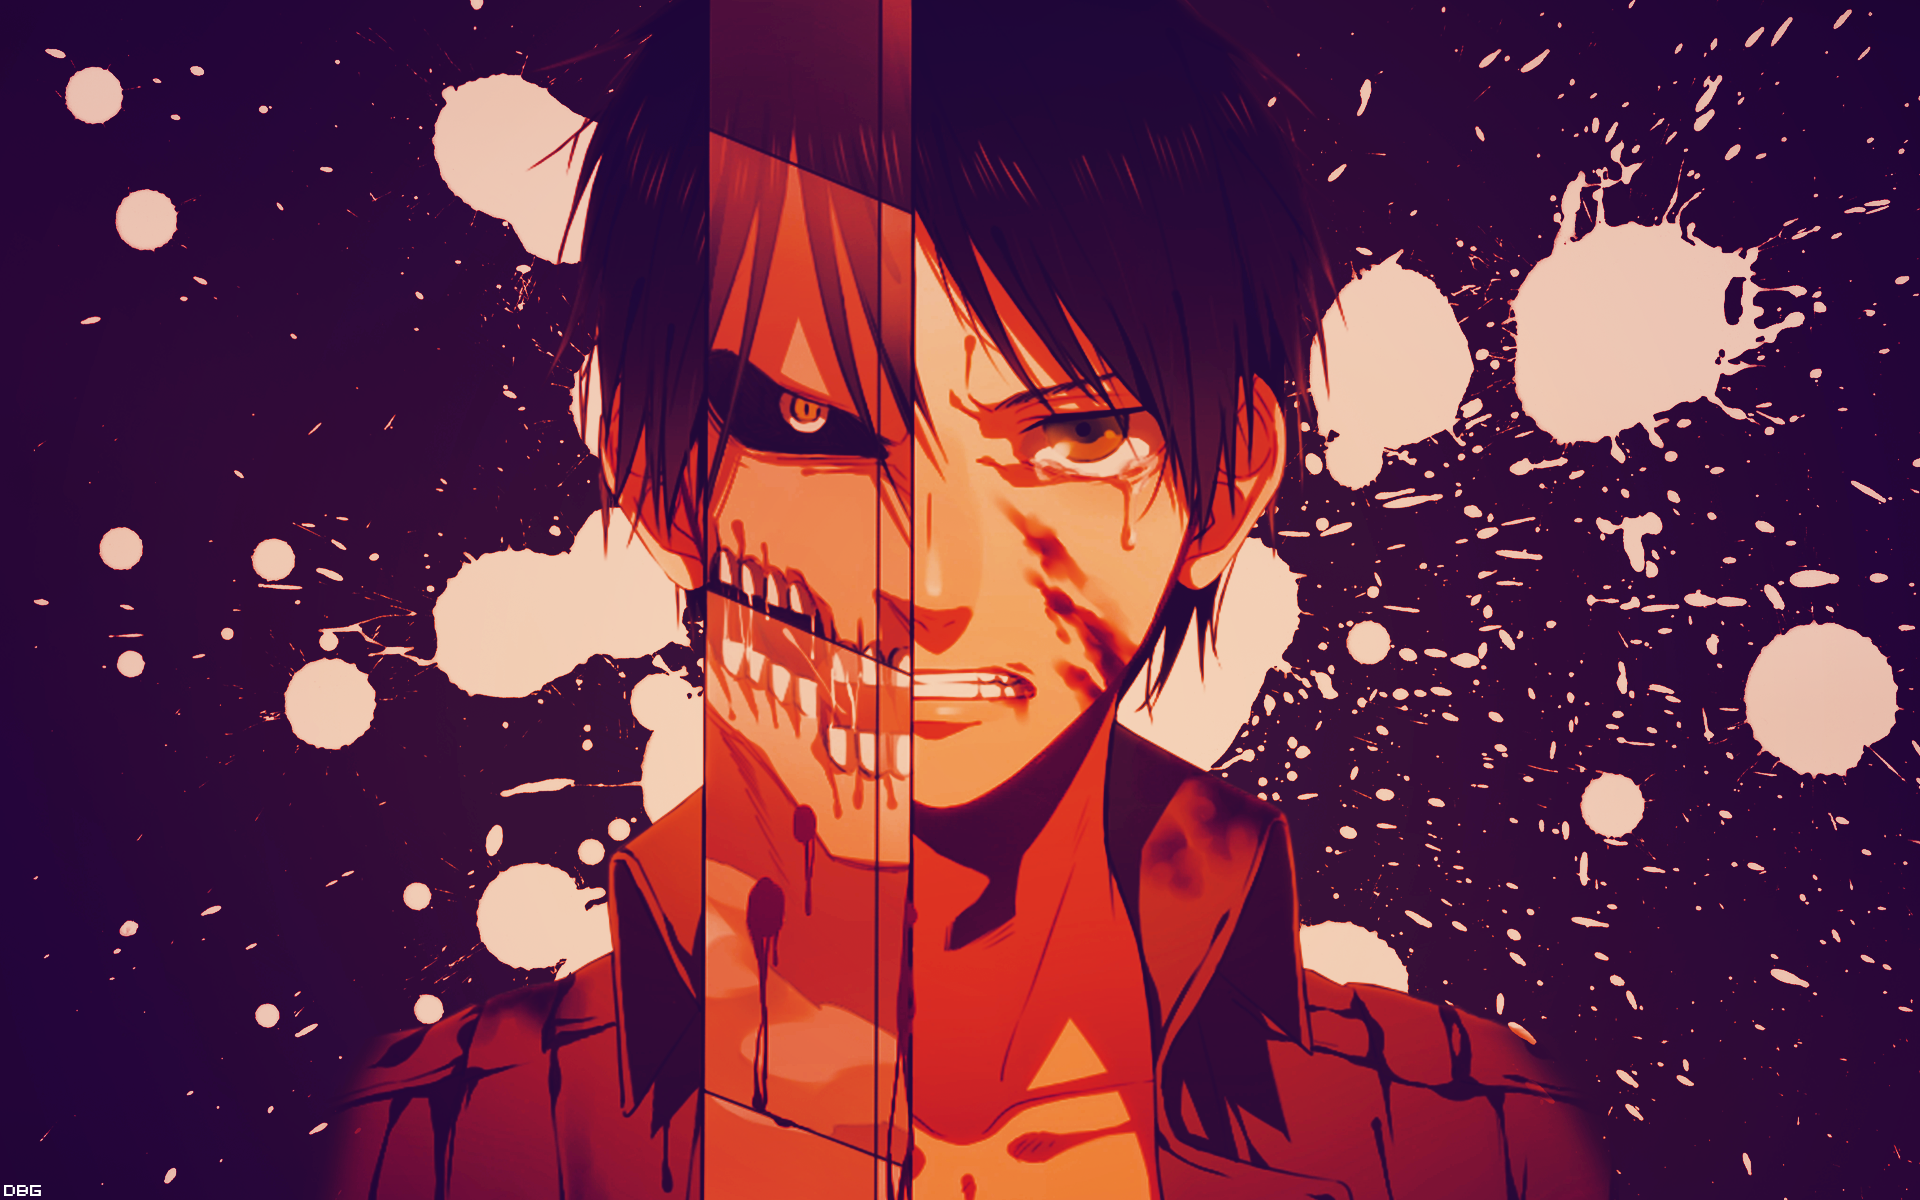 titans red shingeki no - photo #22